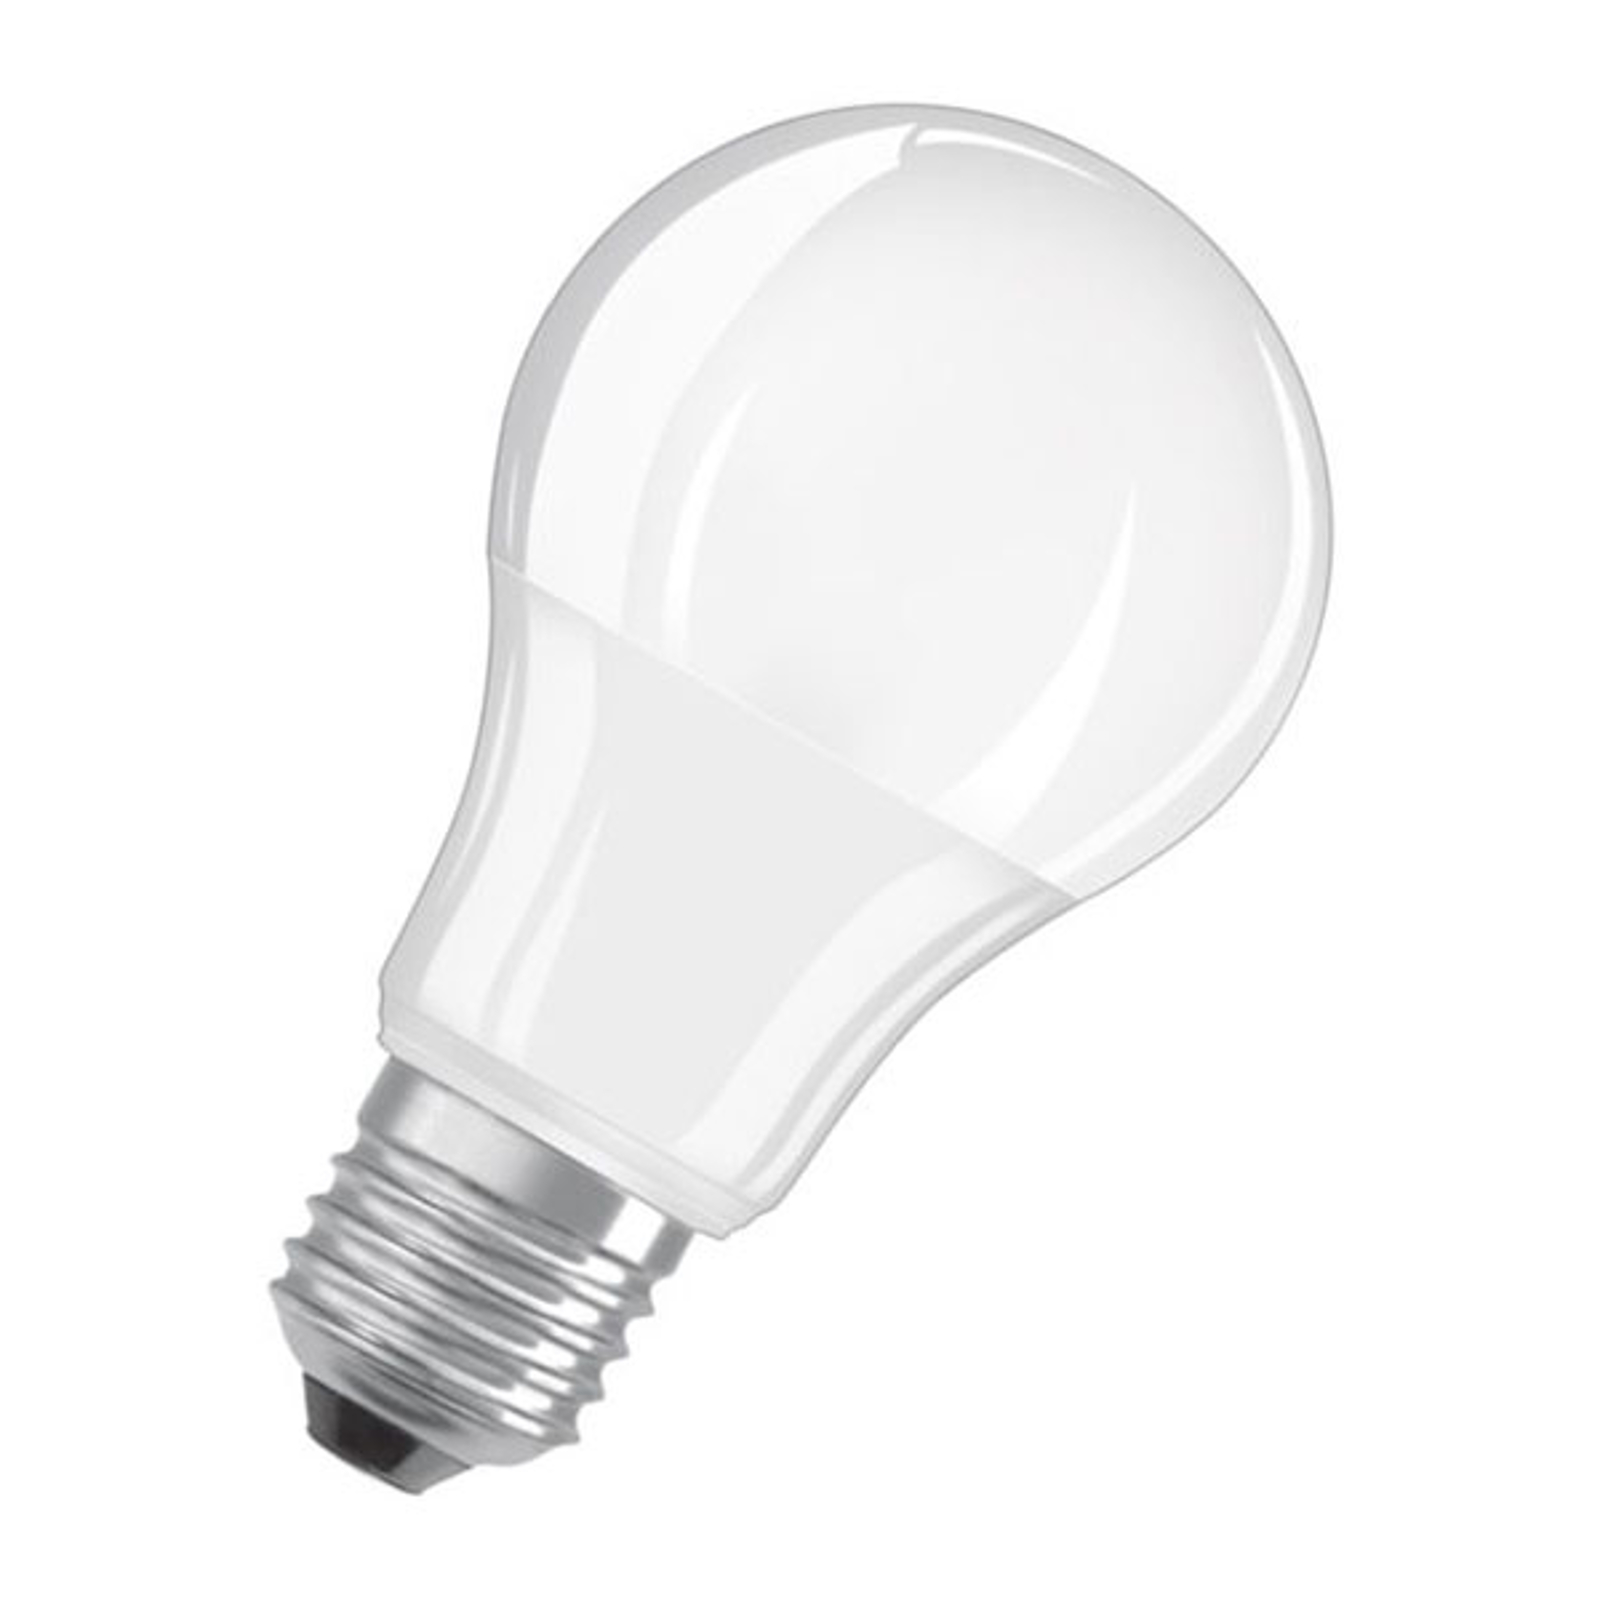 OSRAM LED-Lampe E27 9W 827 Superstar matt dimmbar